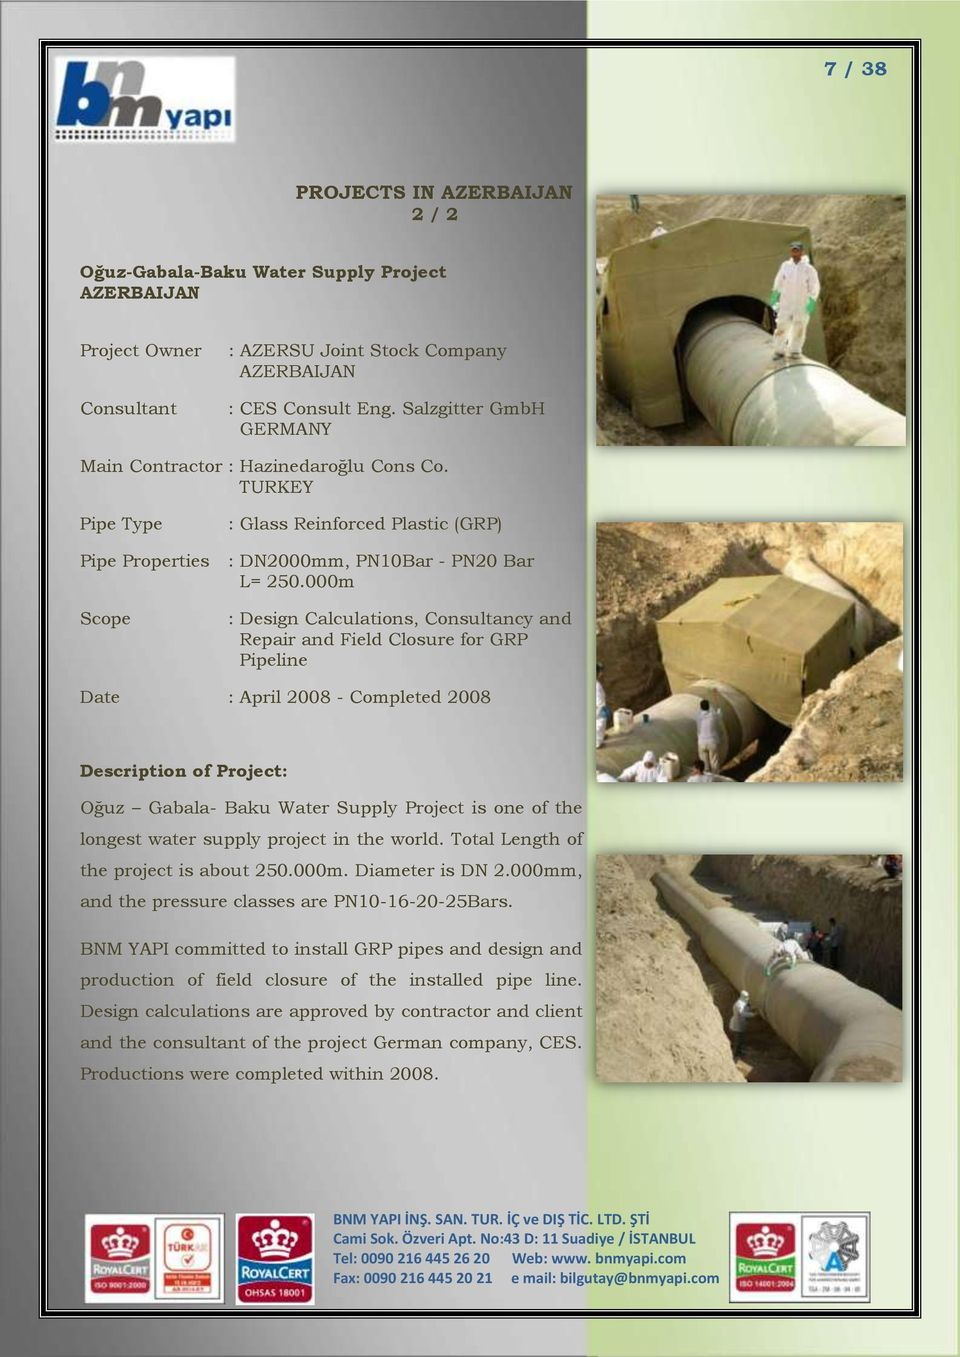 000m Scope : Design Calculations, Consultancy and Repair and Field Closure for GRP Pipeline Date : April 2008 - Completed 2008 Description of Project: Oğuz Gabala- Baku Water Supply Project is one of